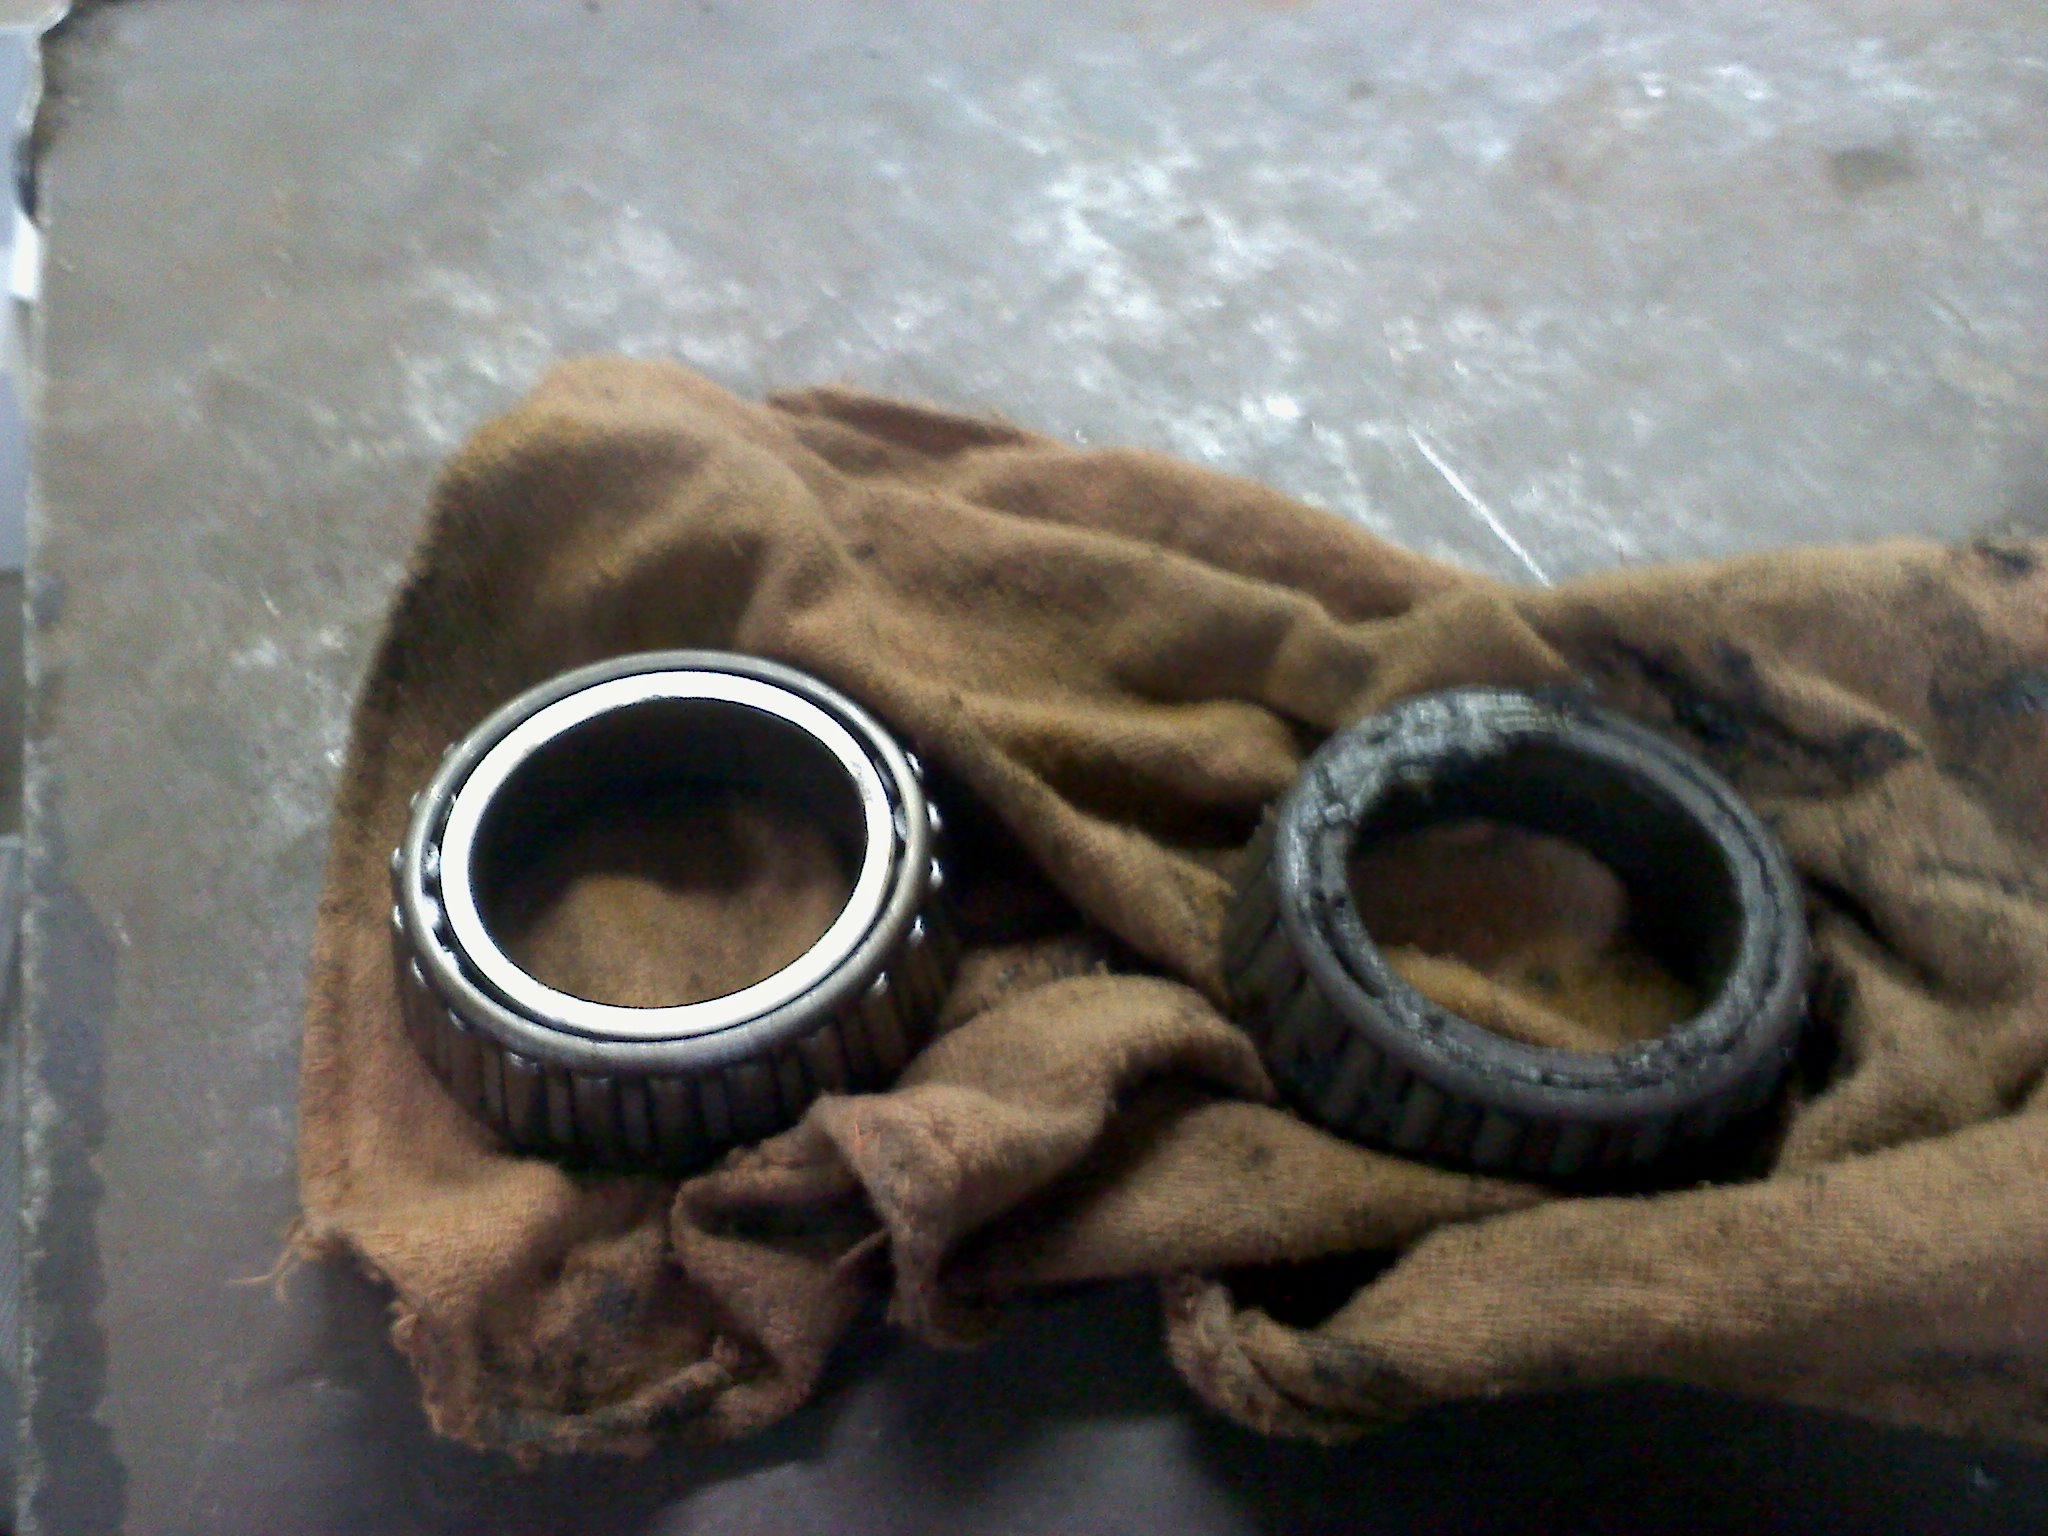 The one that is clean was cleaned in the Cuda 2412 110V parts washer for about 3 minutes, the one that is still dirty was cleaned in the Safety-Kleen AQ-1 parts washer for 5 minutes.